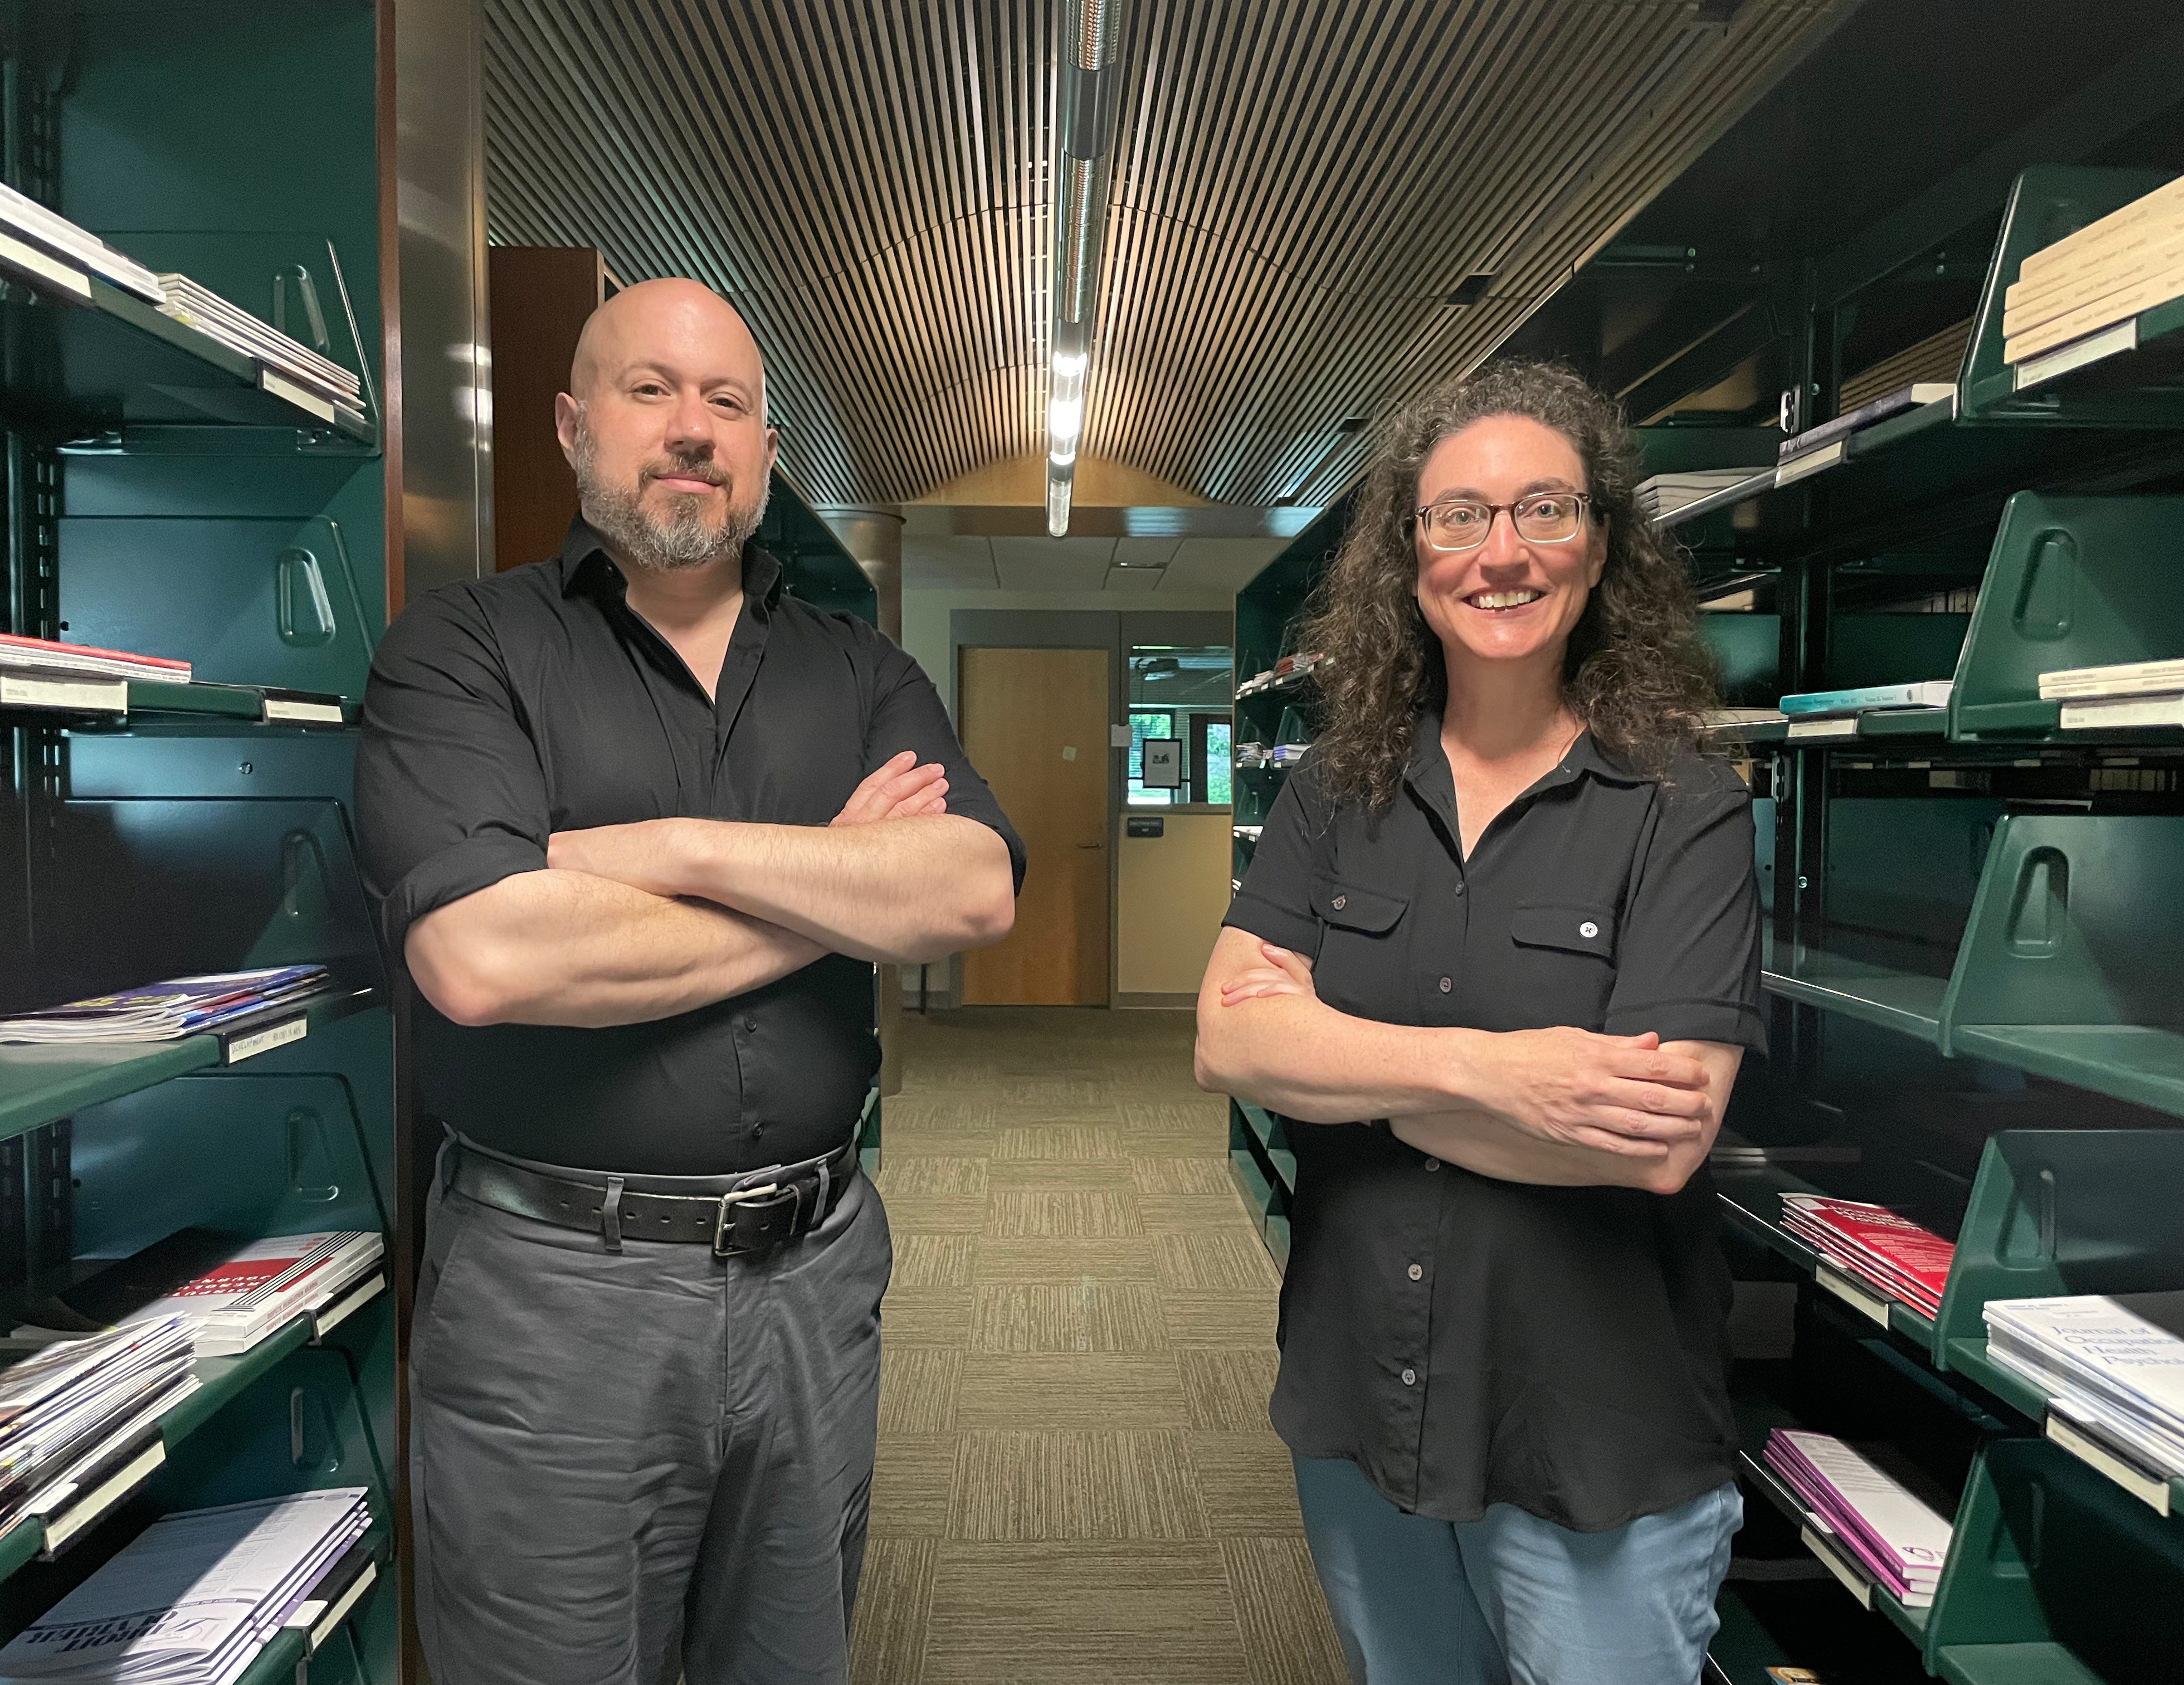 Jim DelRosso and Suzanne Cohen at Catherwood Library